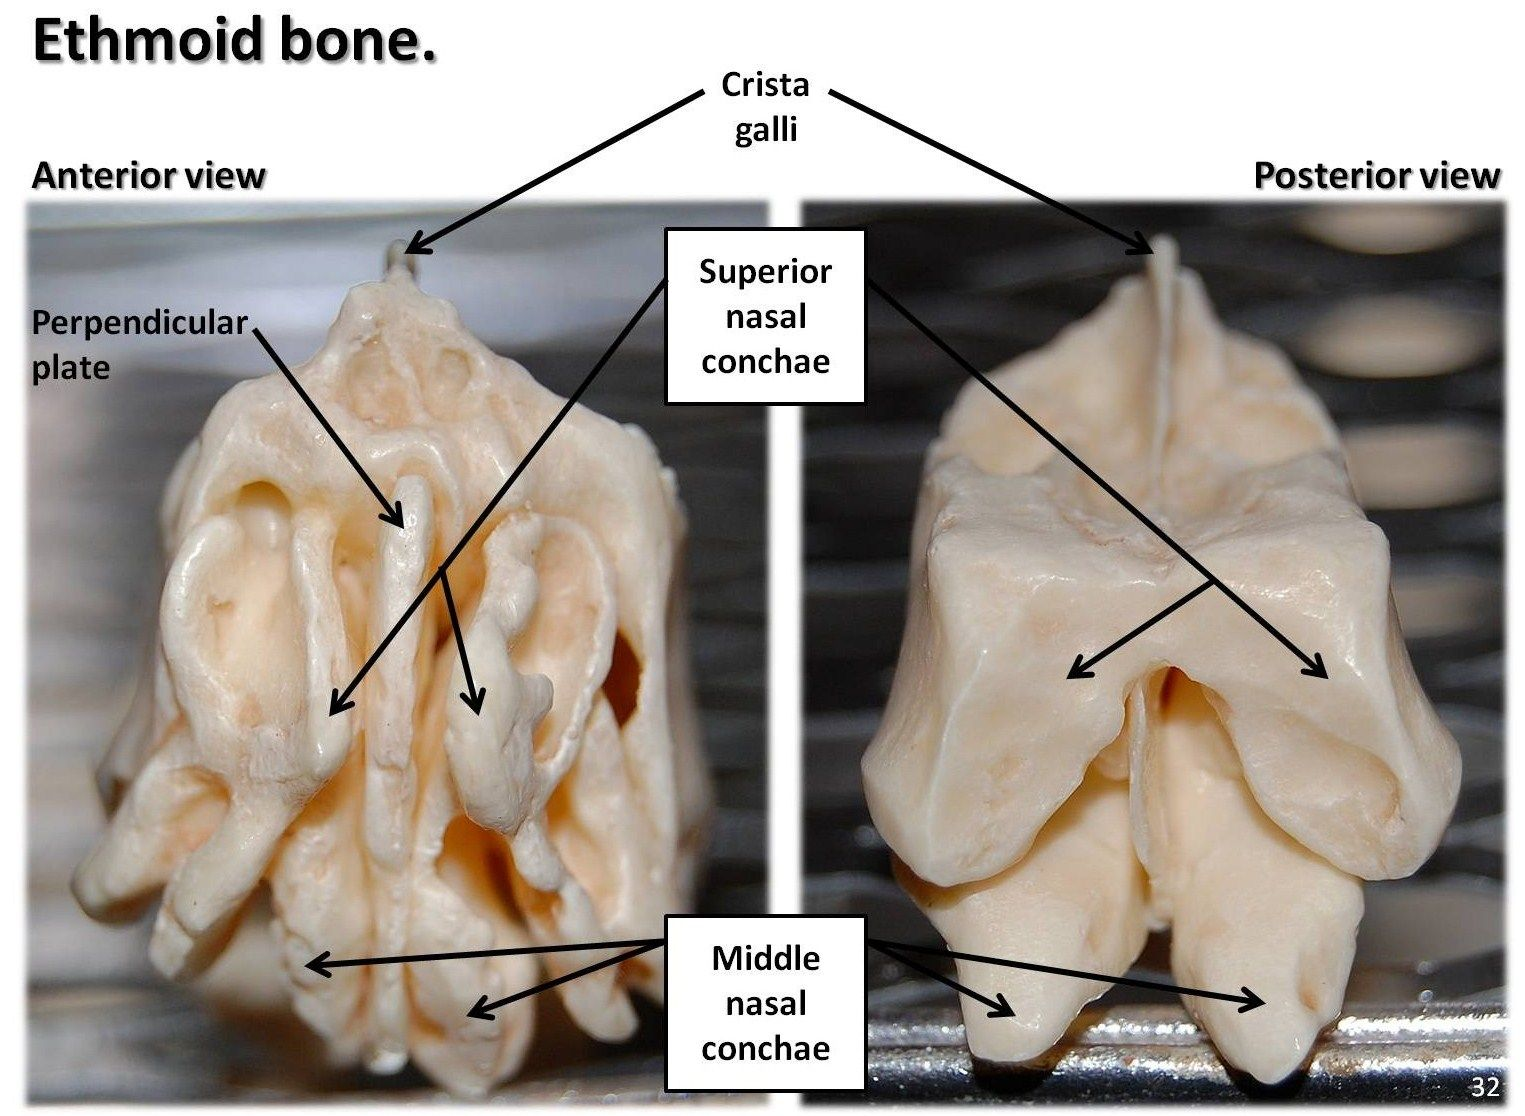 Ethmoid Bone | Ethmoid bone, anterior and posterior views with ...